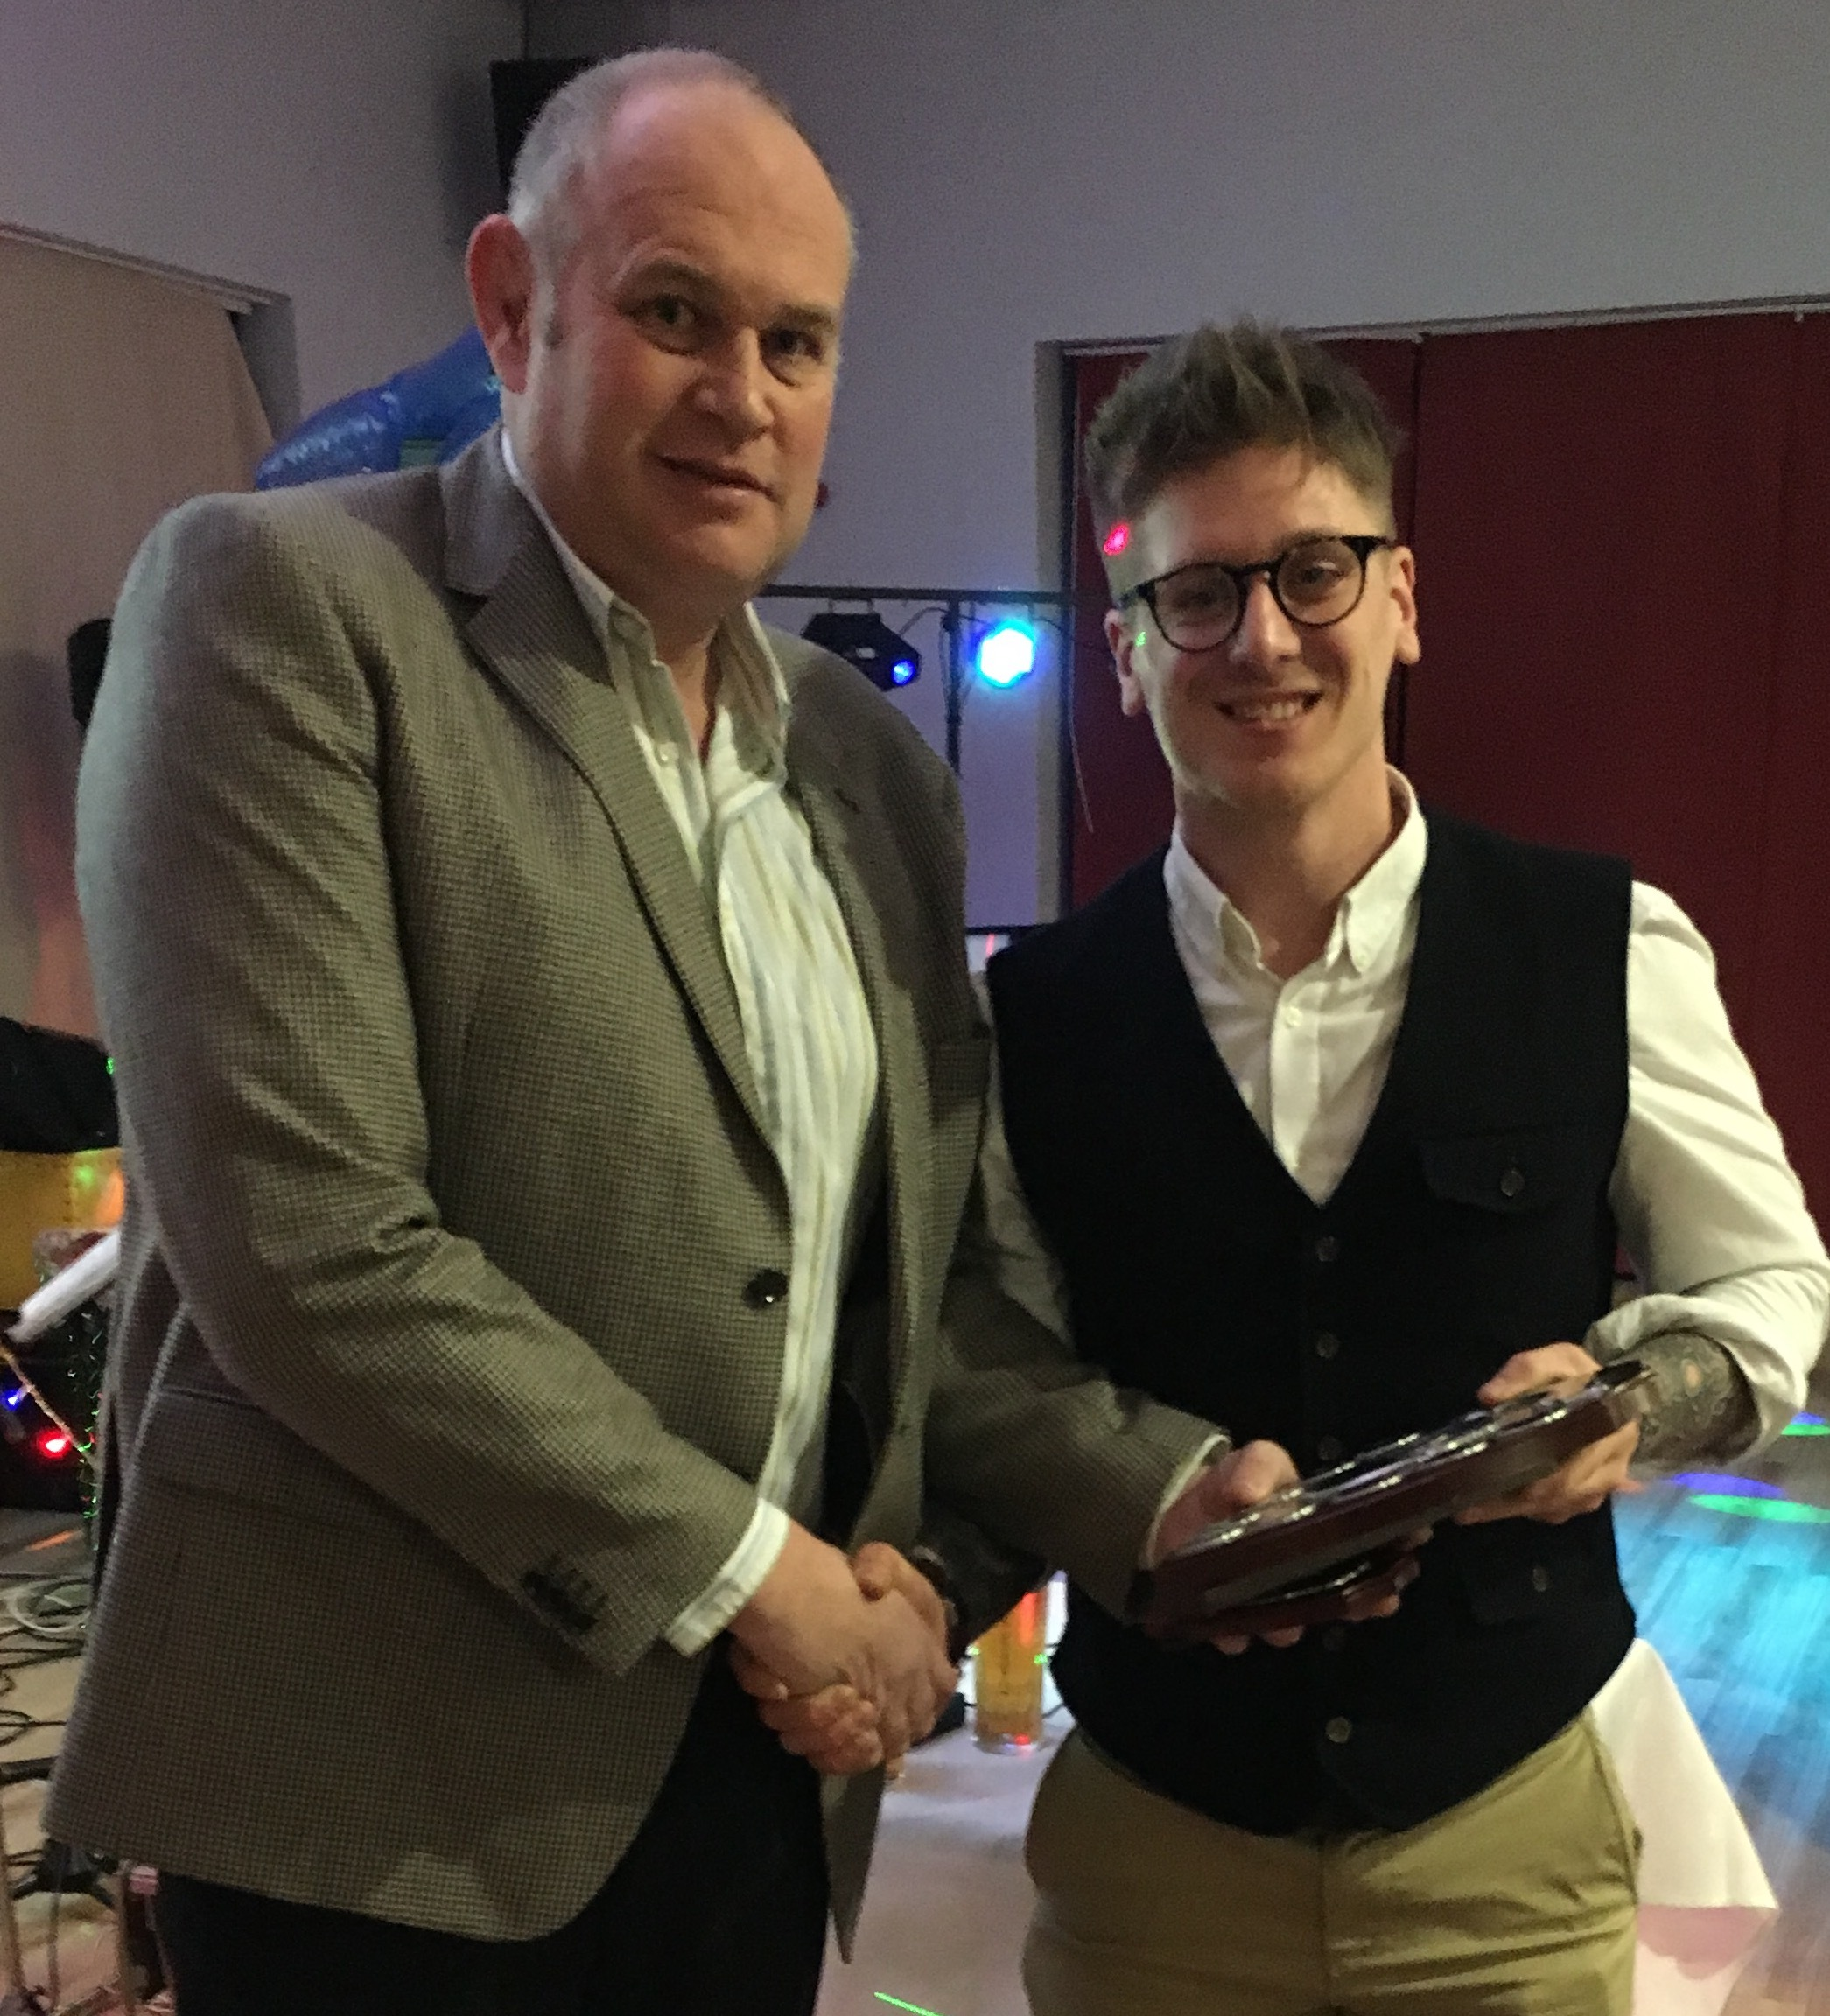 Steven Owen presents Apprentice of the Year Sam Wycherley with his plaque at the company awards